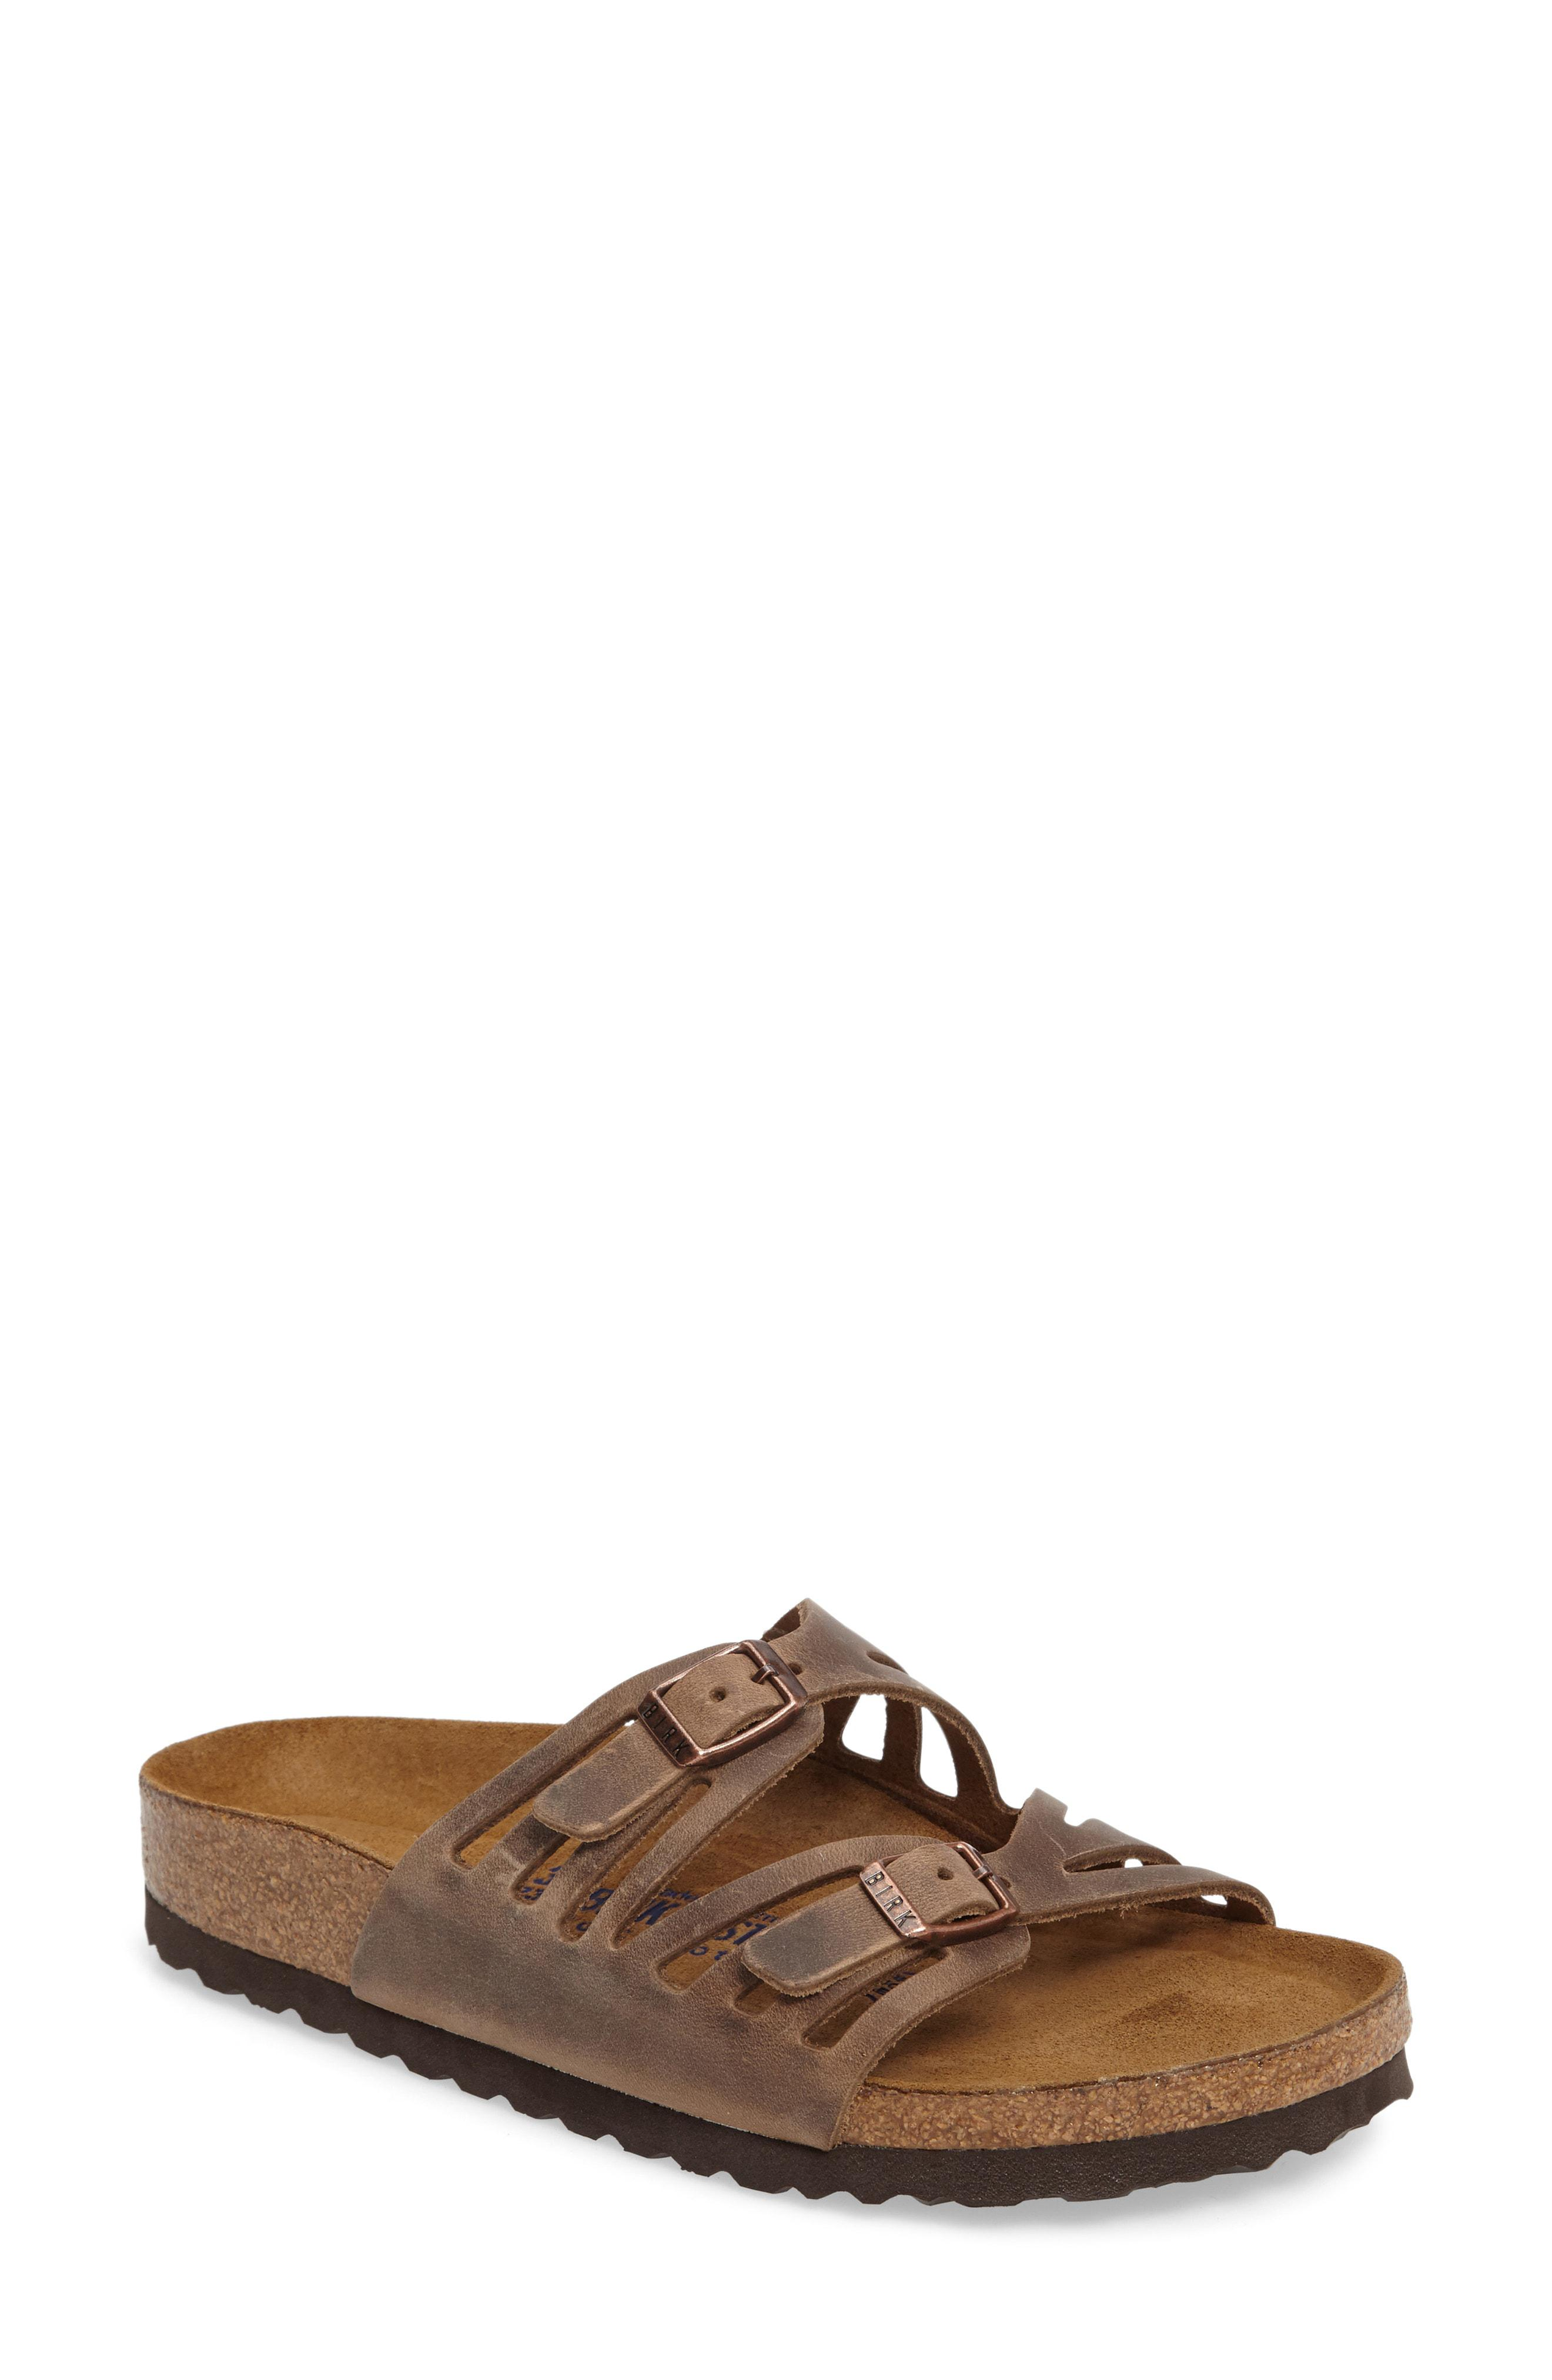 7afd2c4d2e078 Birkenstock. Women s Brown Granada Soft Footbed Oiled Leather Sandal